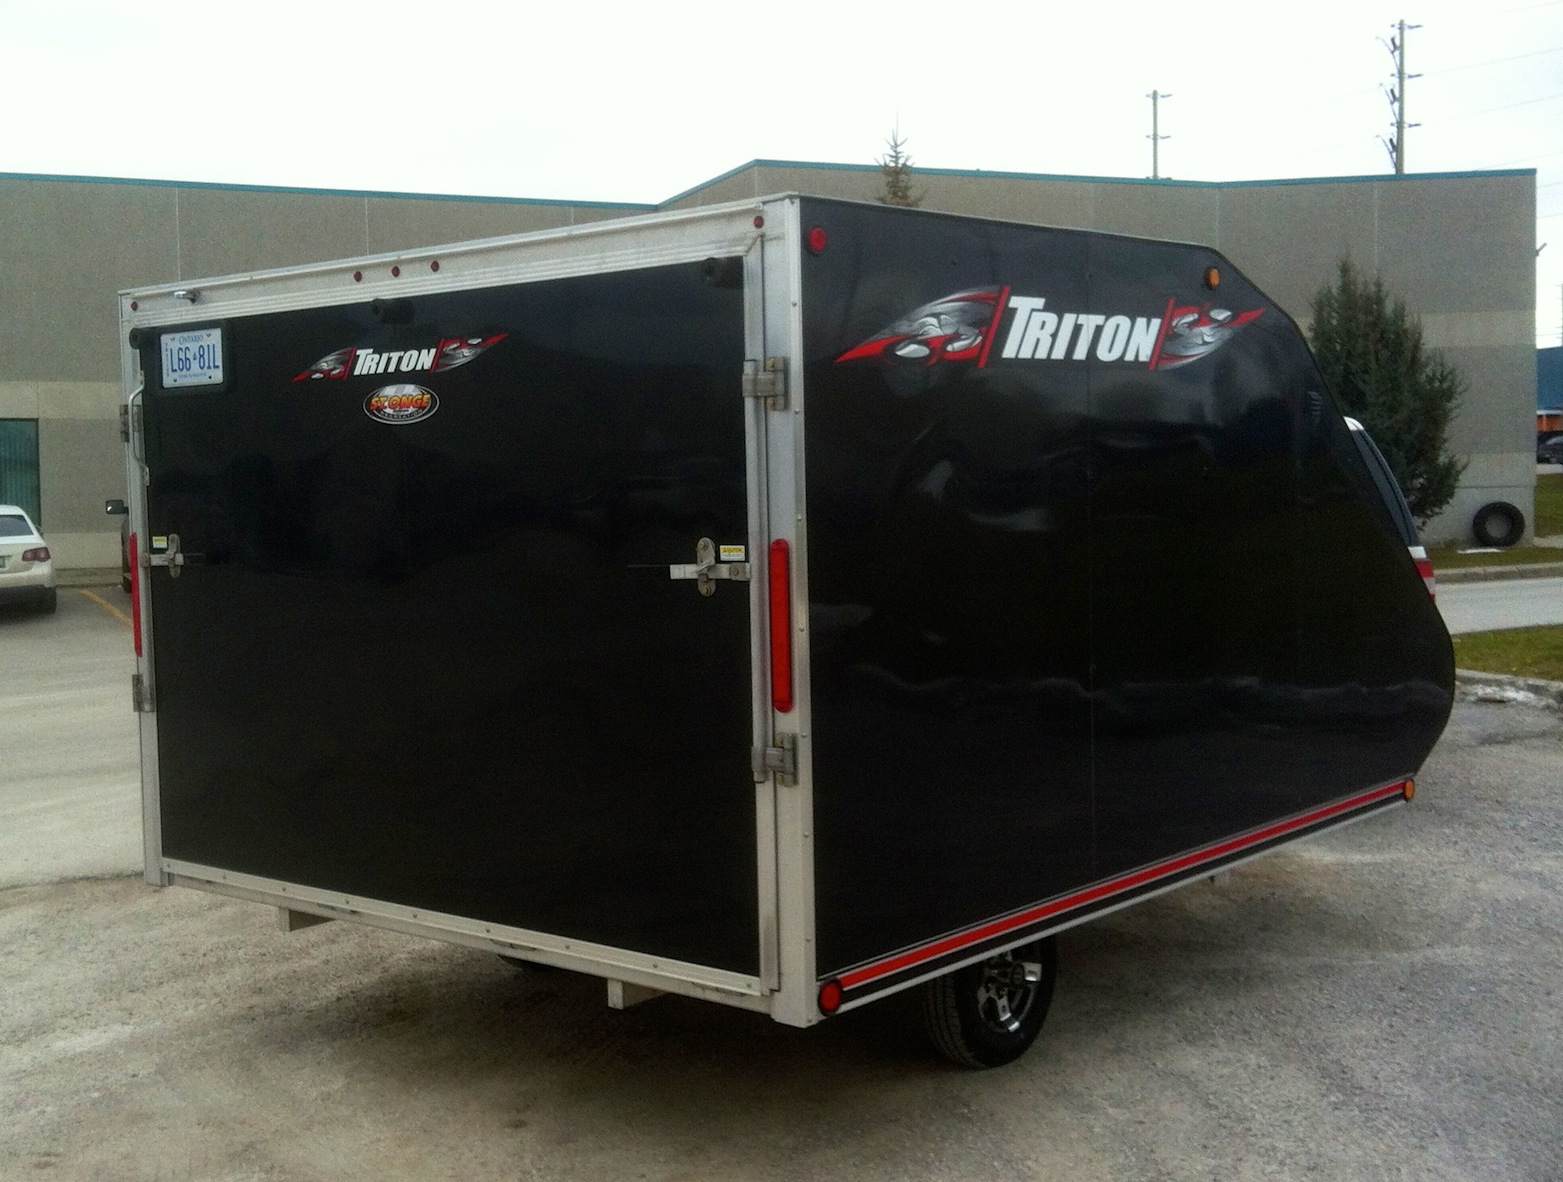 Snowmobile Trailer Triton TC Series Intrepid Snowmobiler Product Review